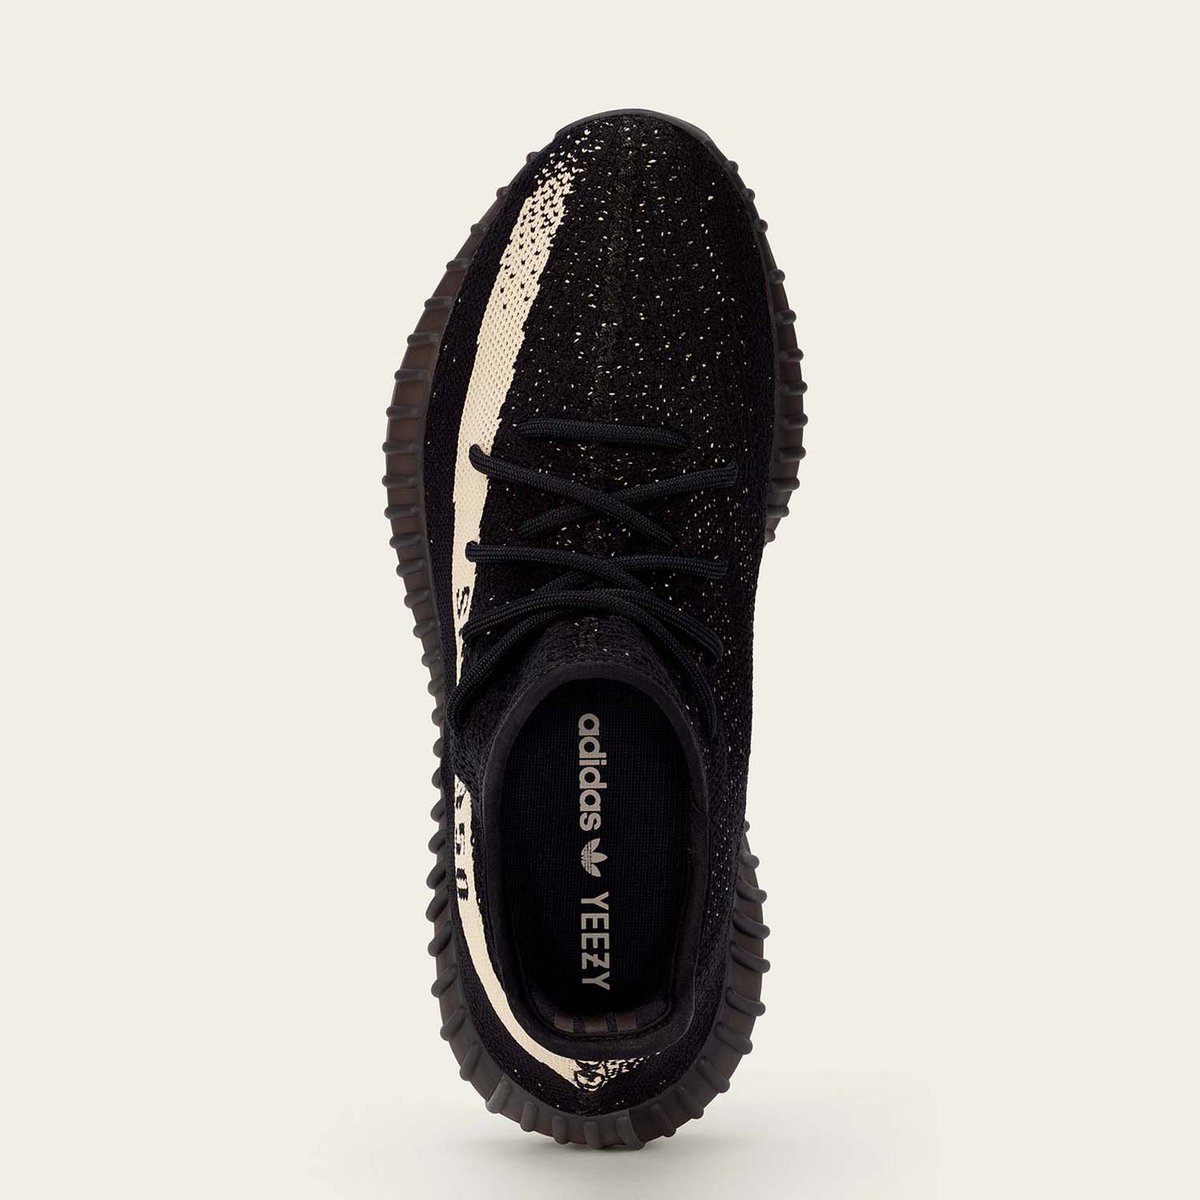 0159f8a8b6abf Adidas Yeezy Boost 350 V2 Official Images